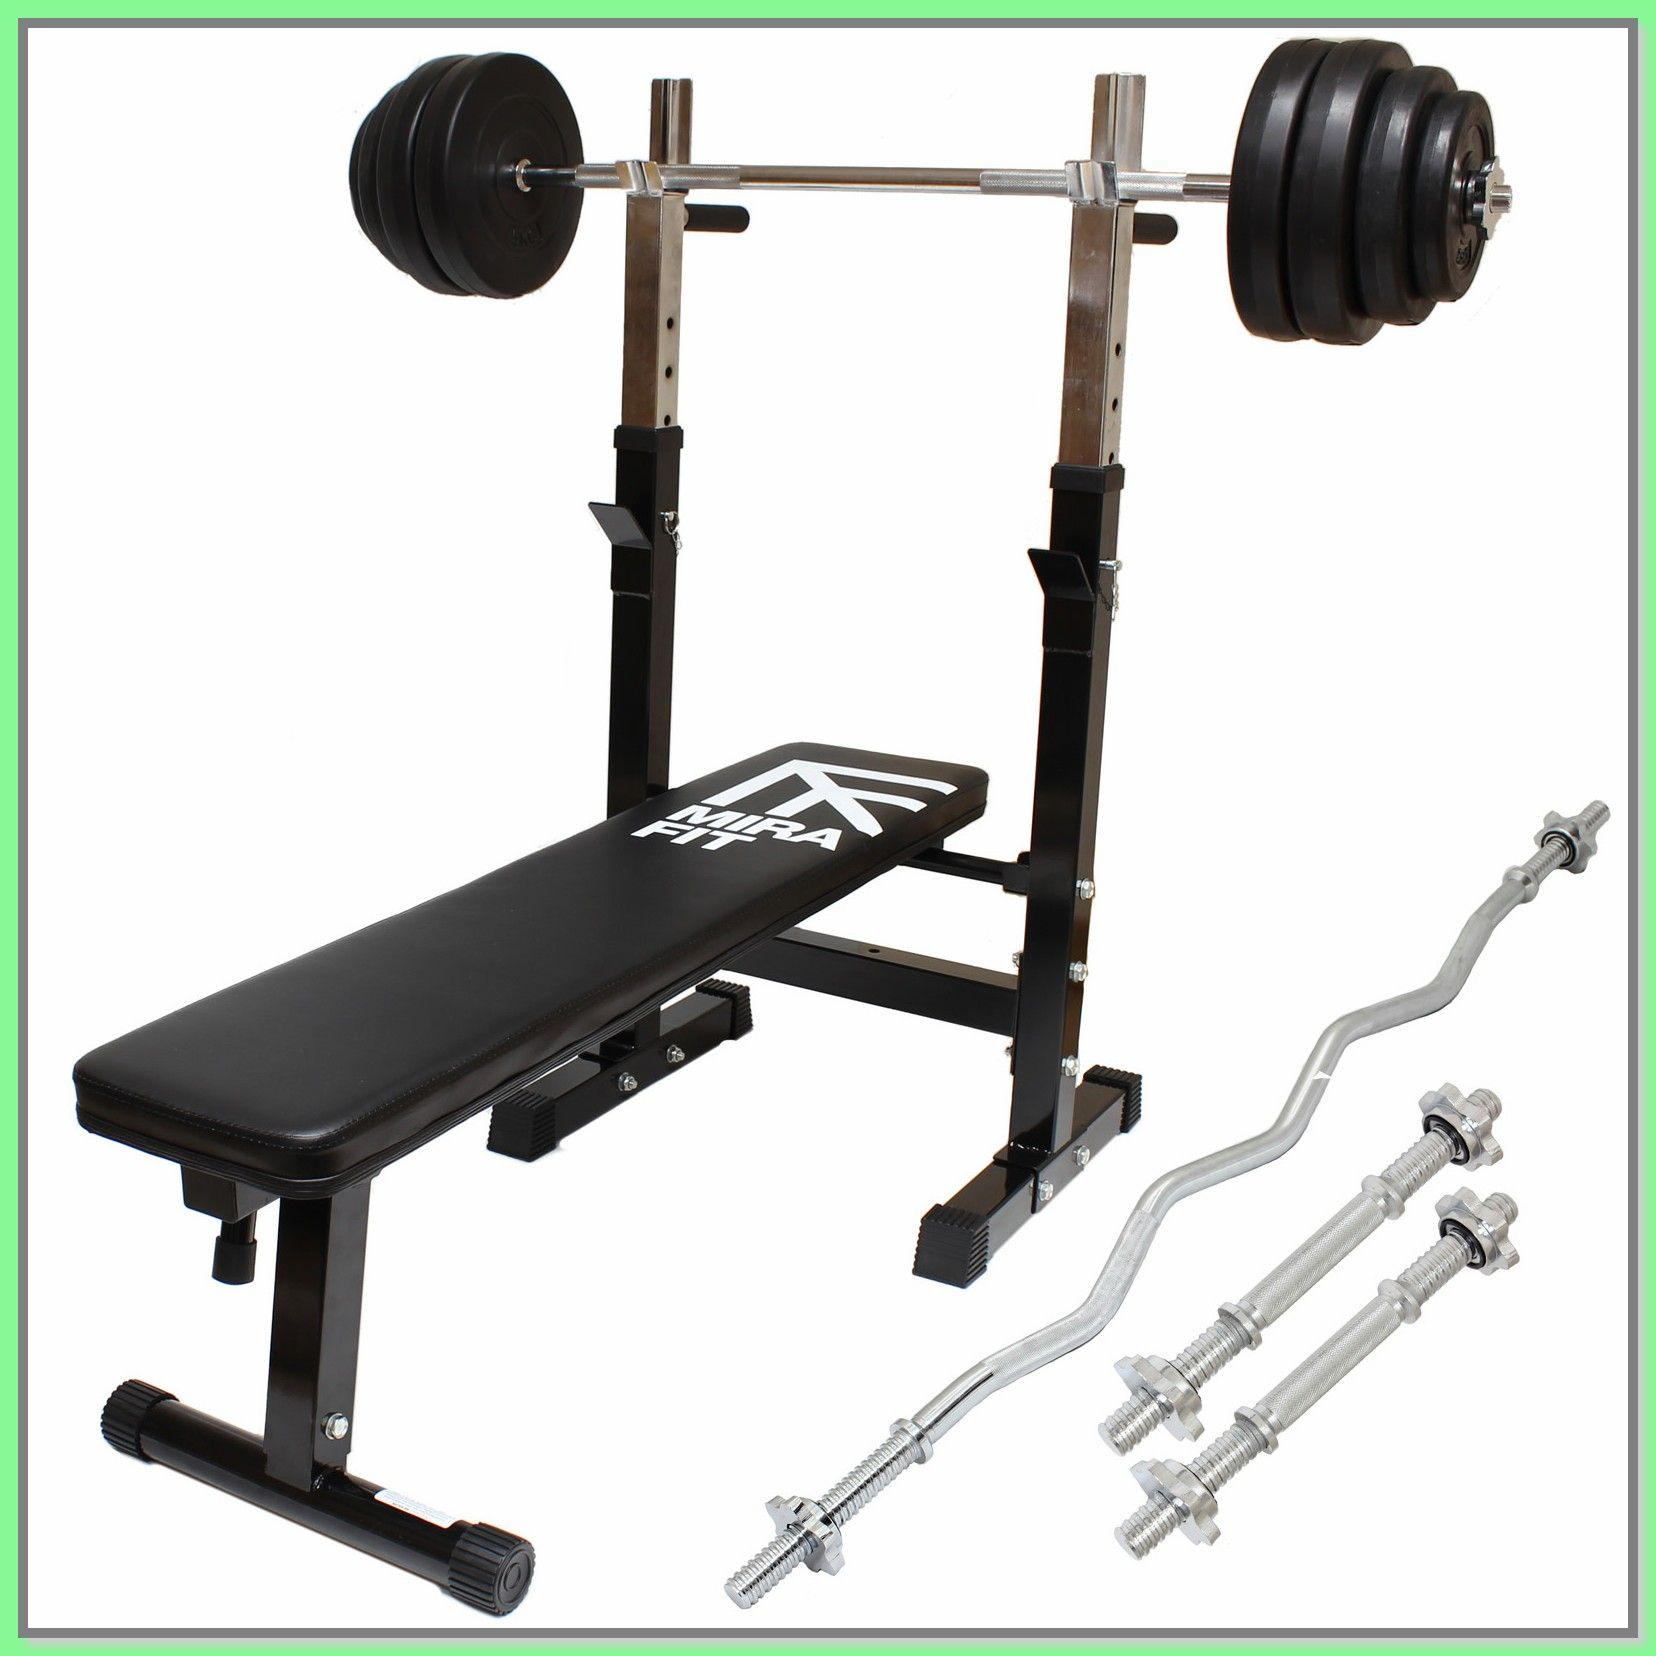 86 Reference Of Bench Set 100kg In 2020 Bench Set House Design Photos Home Gym Bench